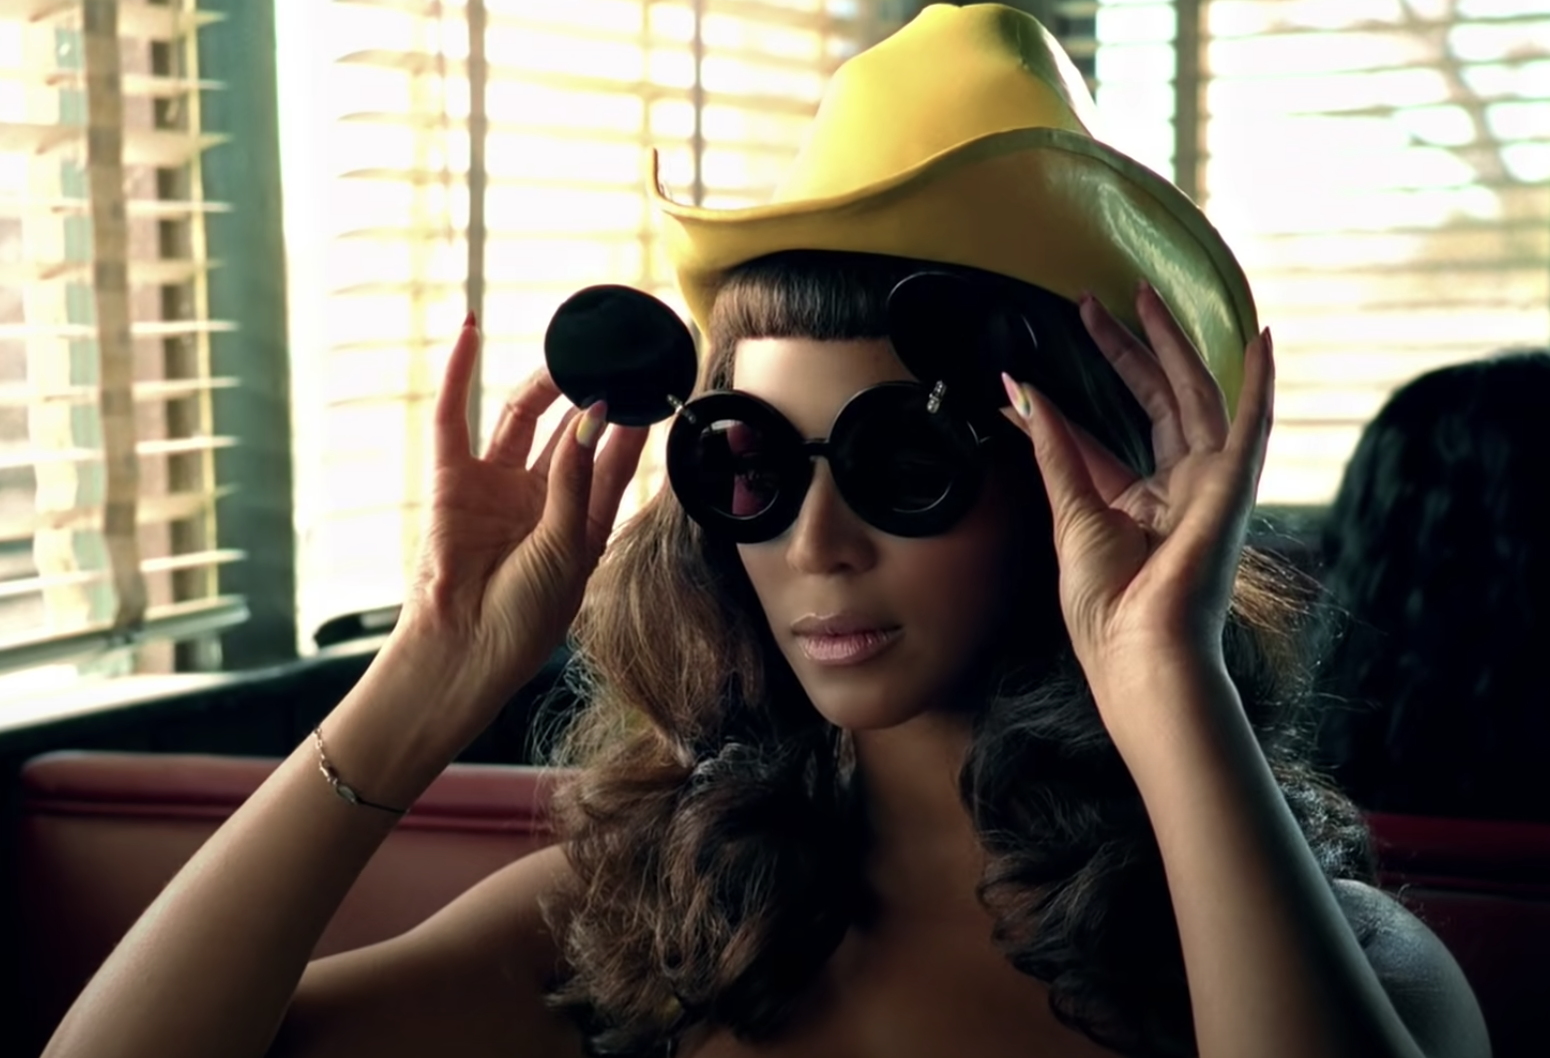 Beyoncé flipping her Mickey Mouse–esque sunglasses up after she successfully killed her man